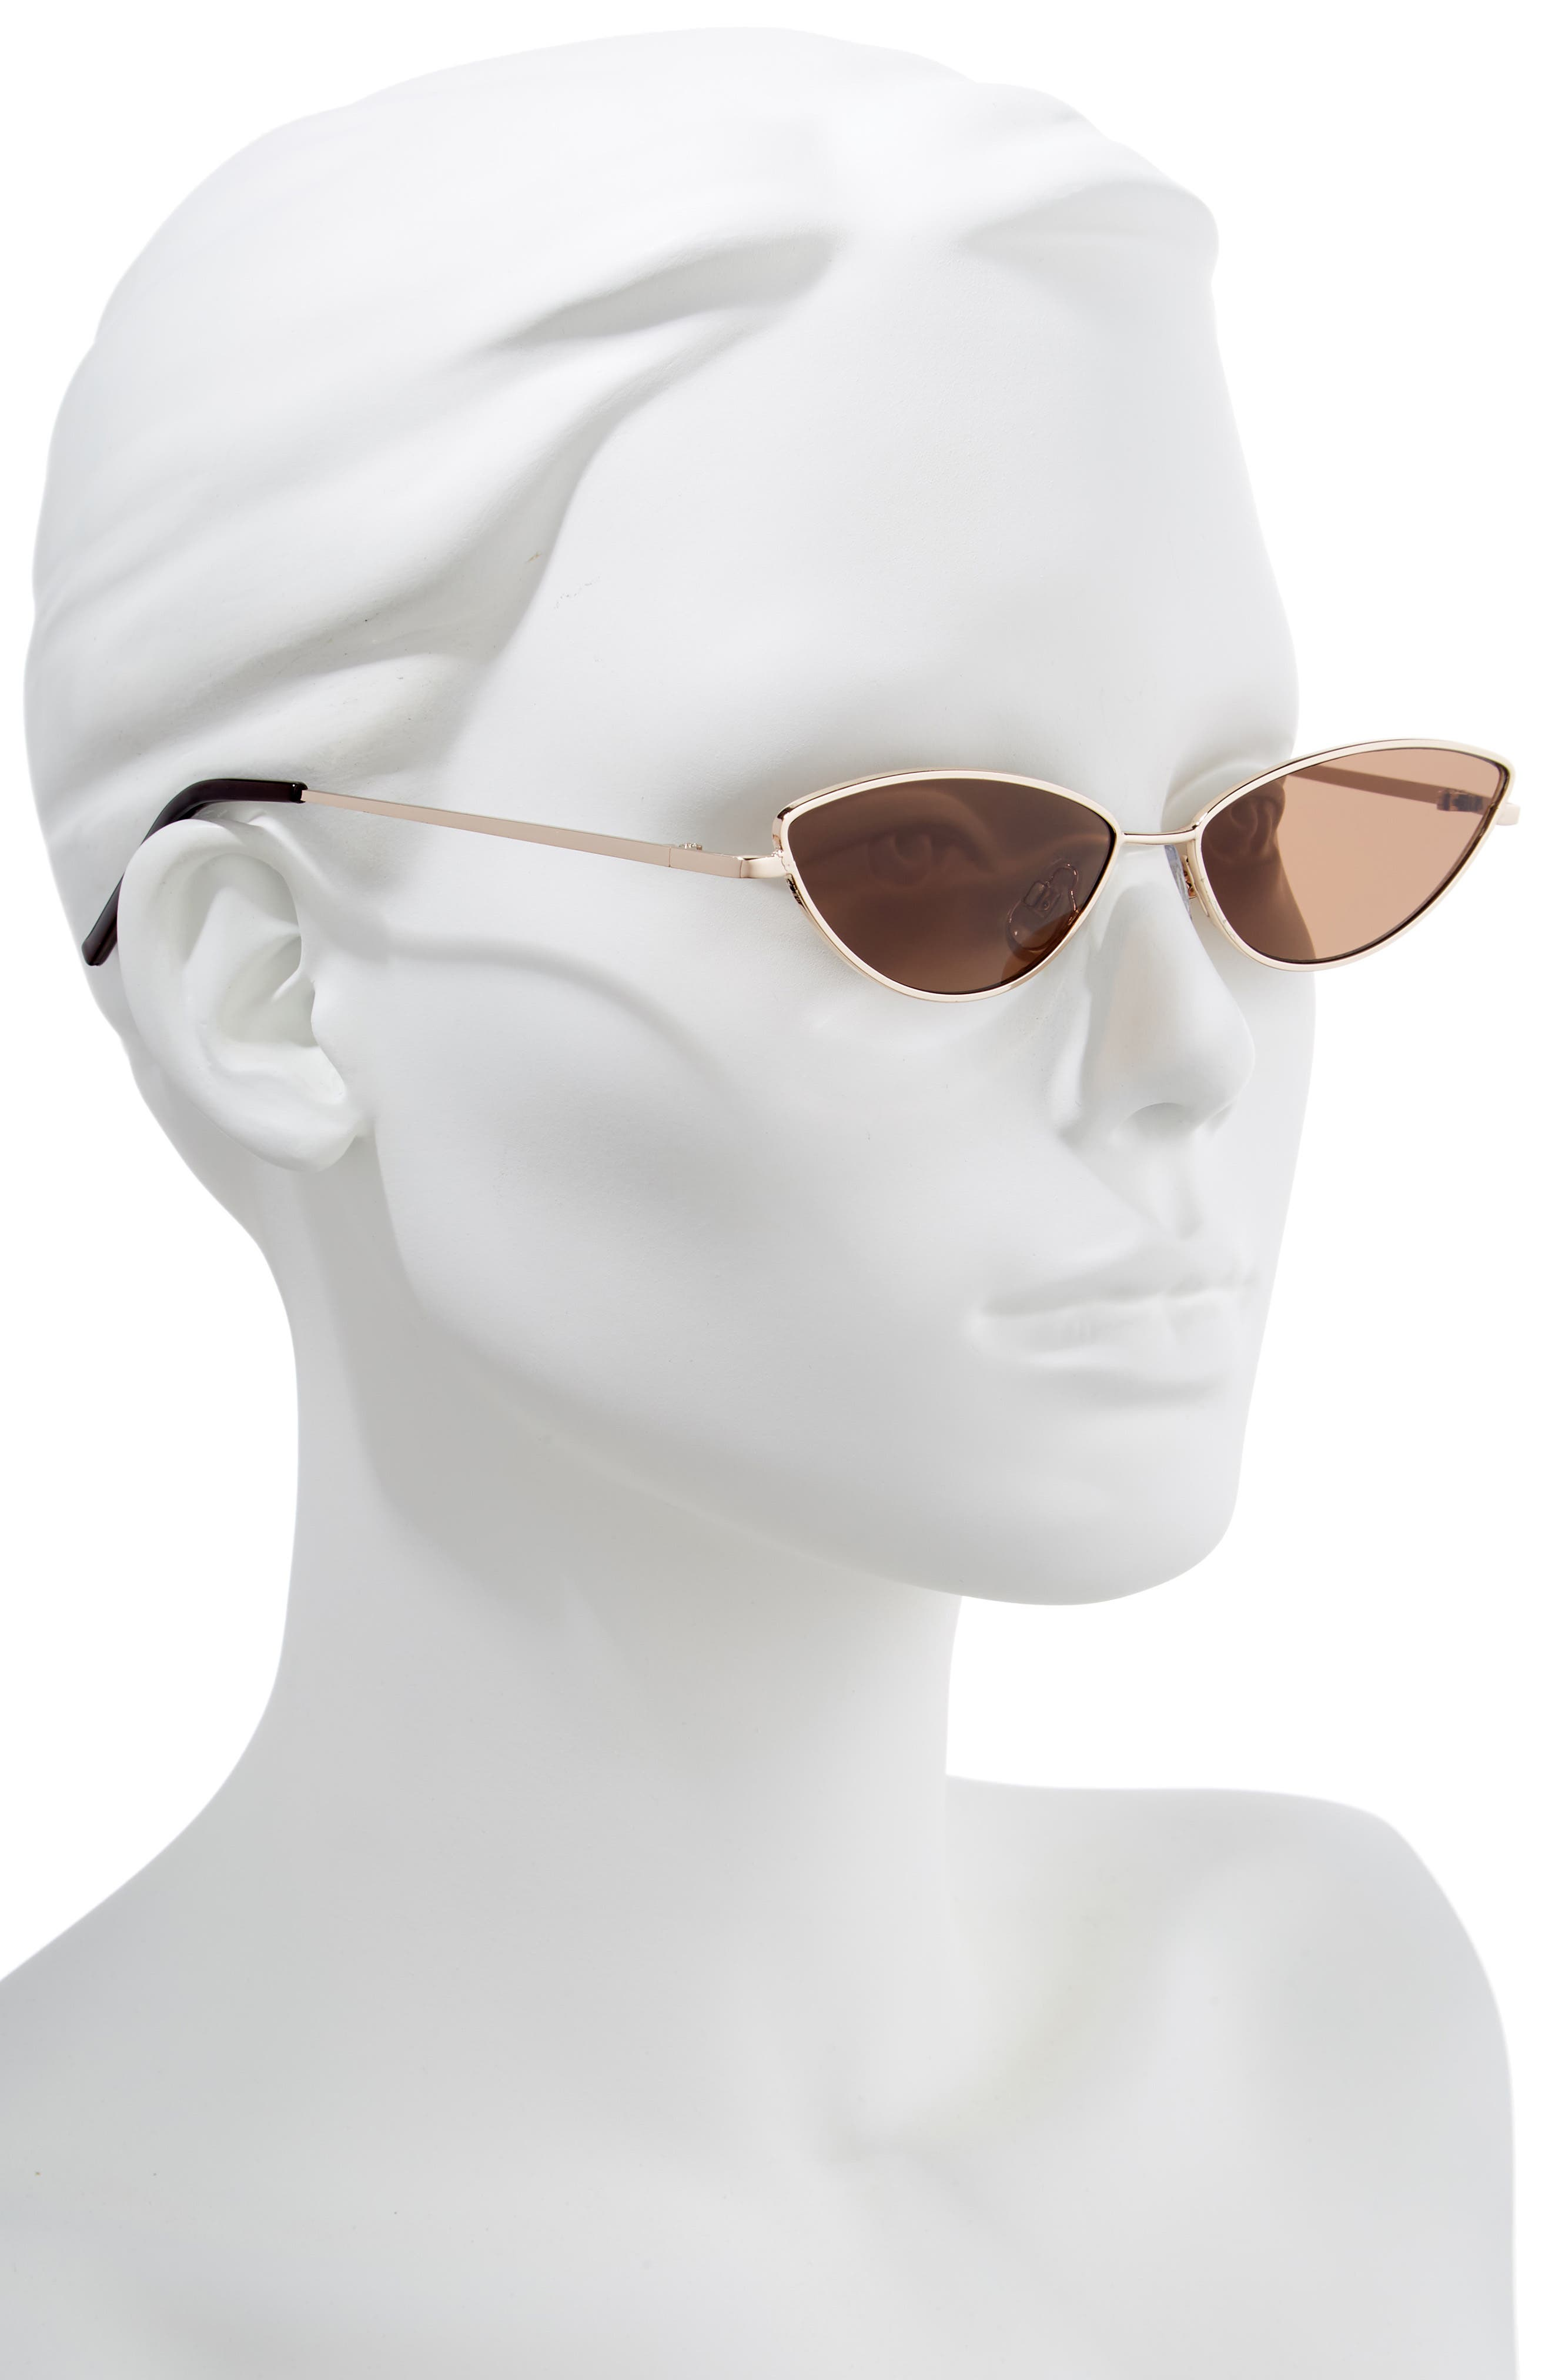 57mm Wide Cat Eye Sunglasses,                             Alternate thumbnail 2, color,                             GOLD/ BROWN